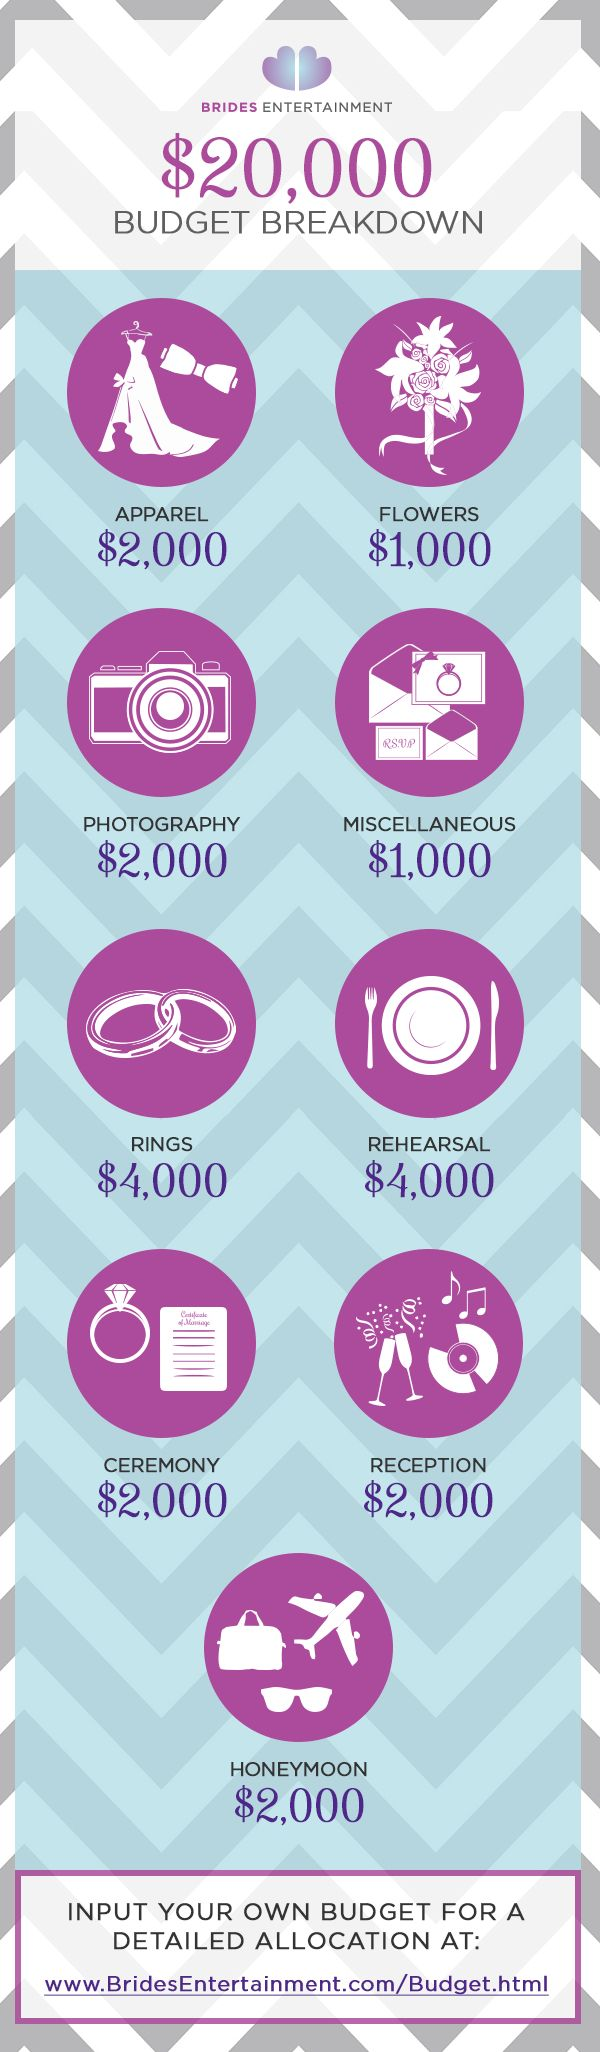 Wedding On A Budget Use The Brides Entertainment Tool You Put Your Total